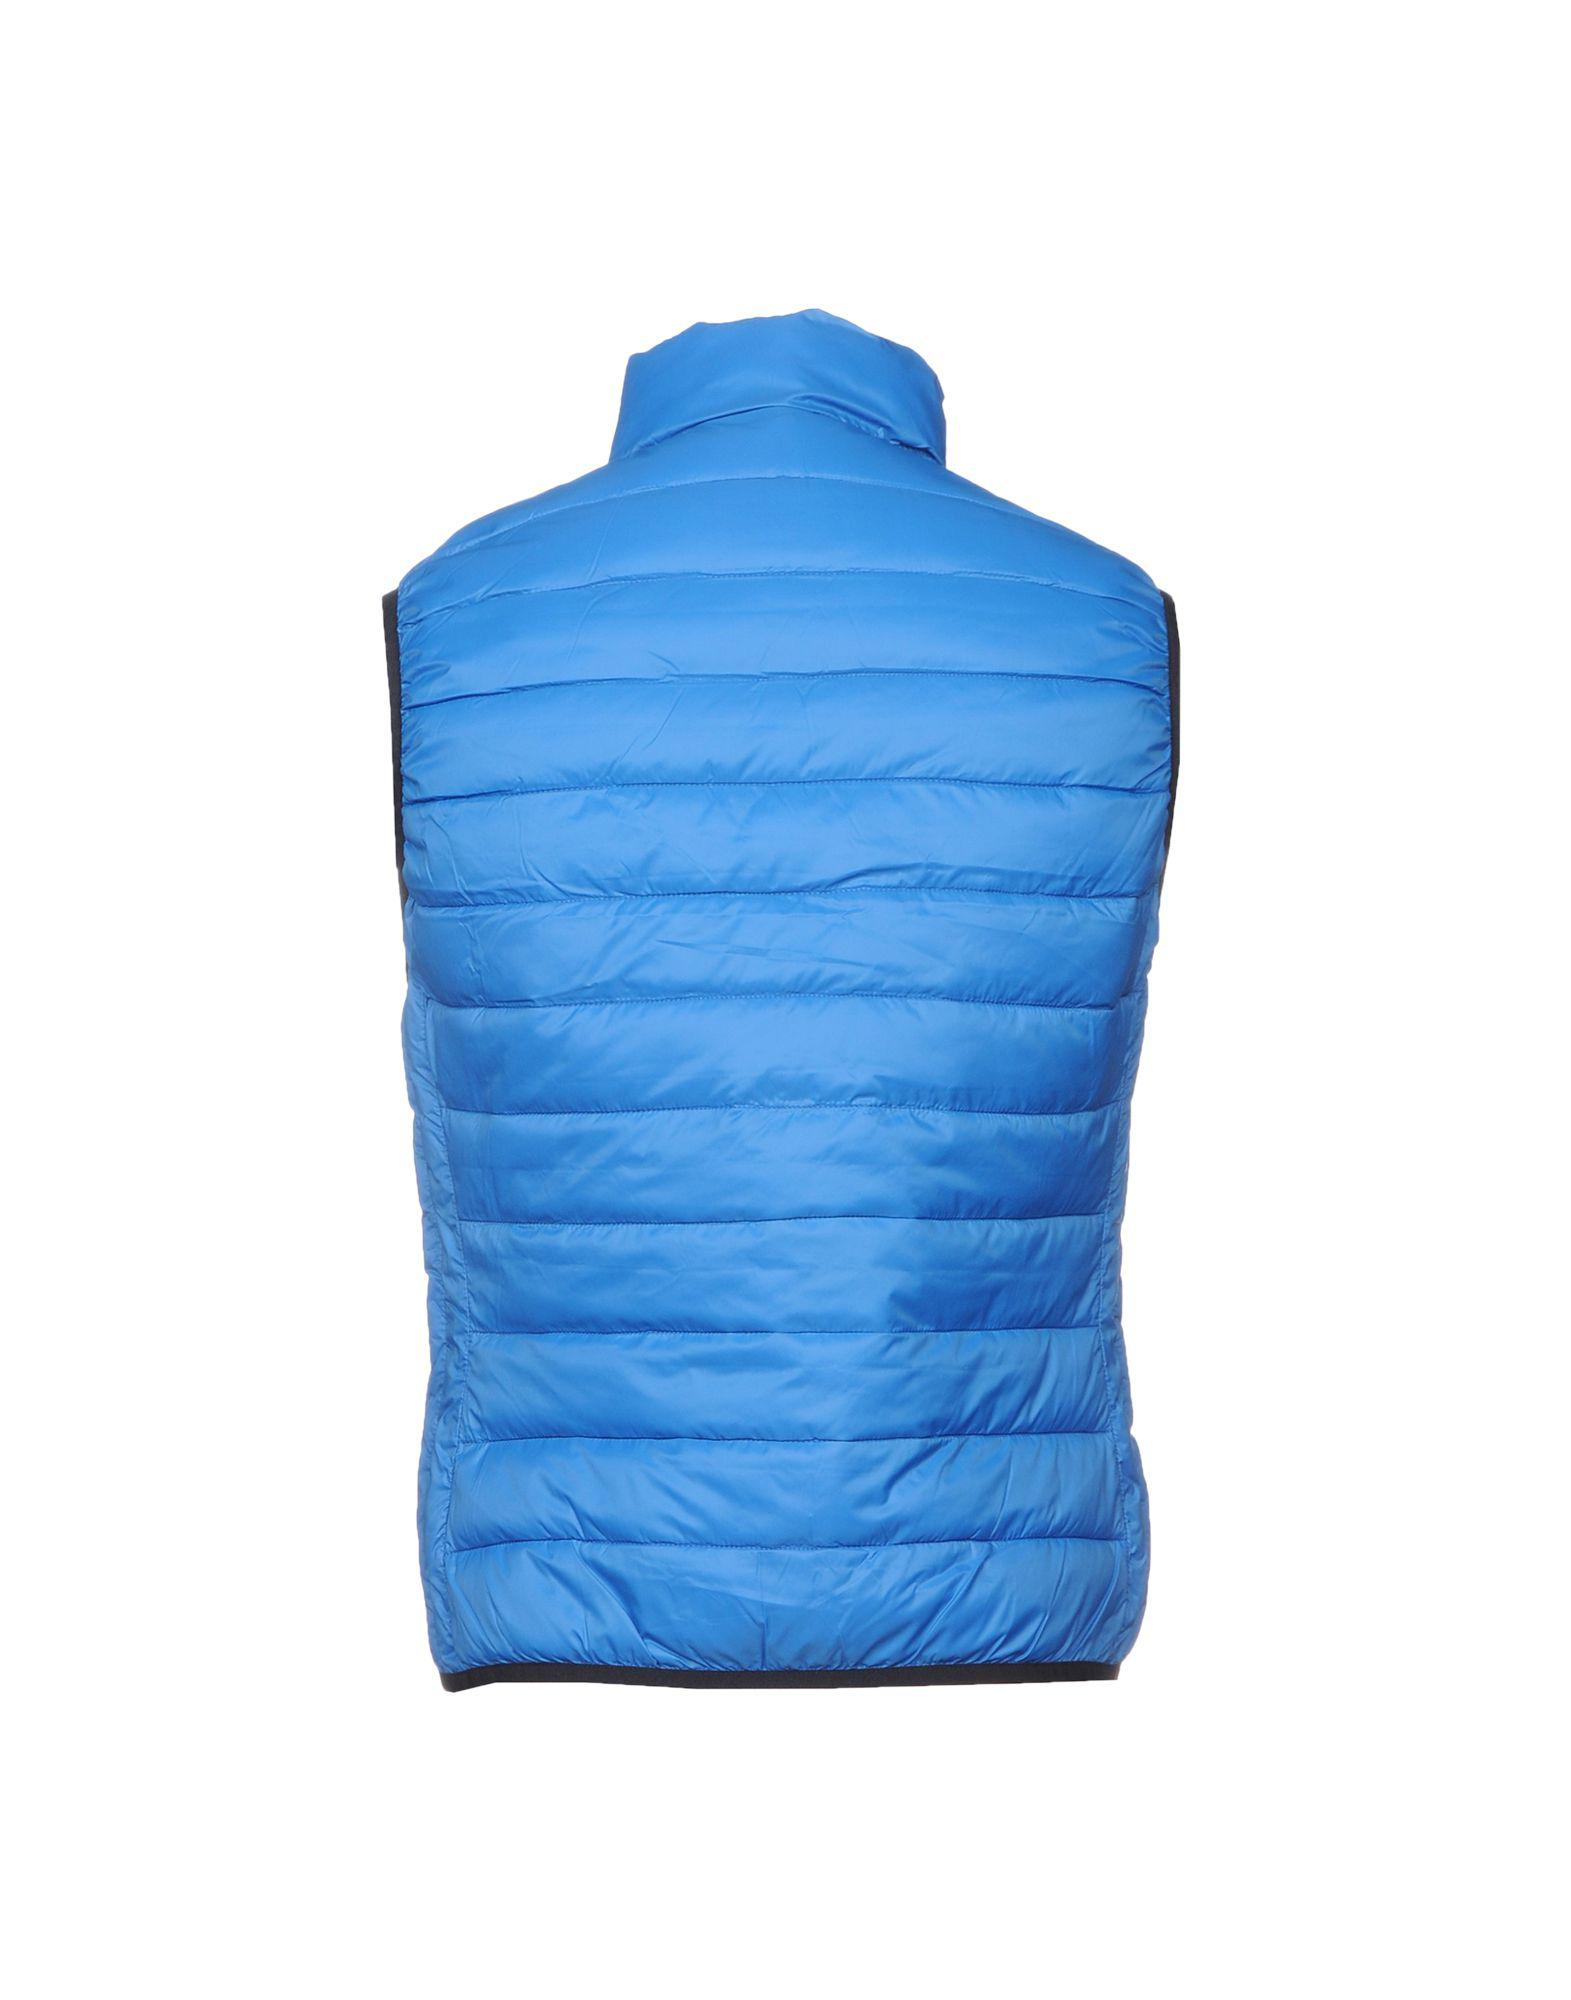 U.S. POLO ASSN. Synthetic Down Jacket in Blue for Men